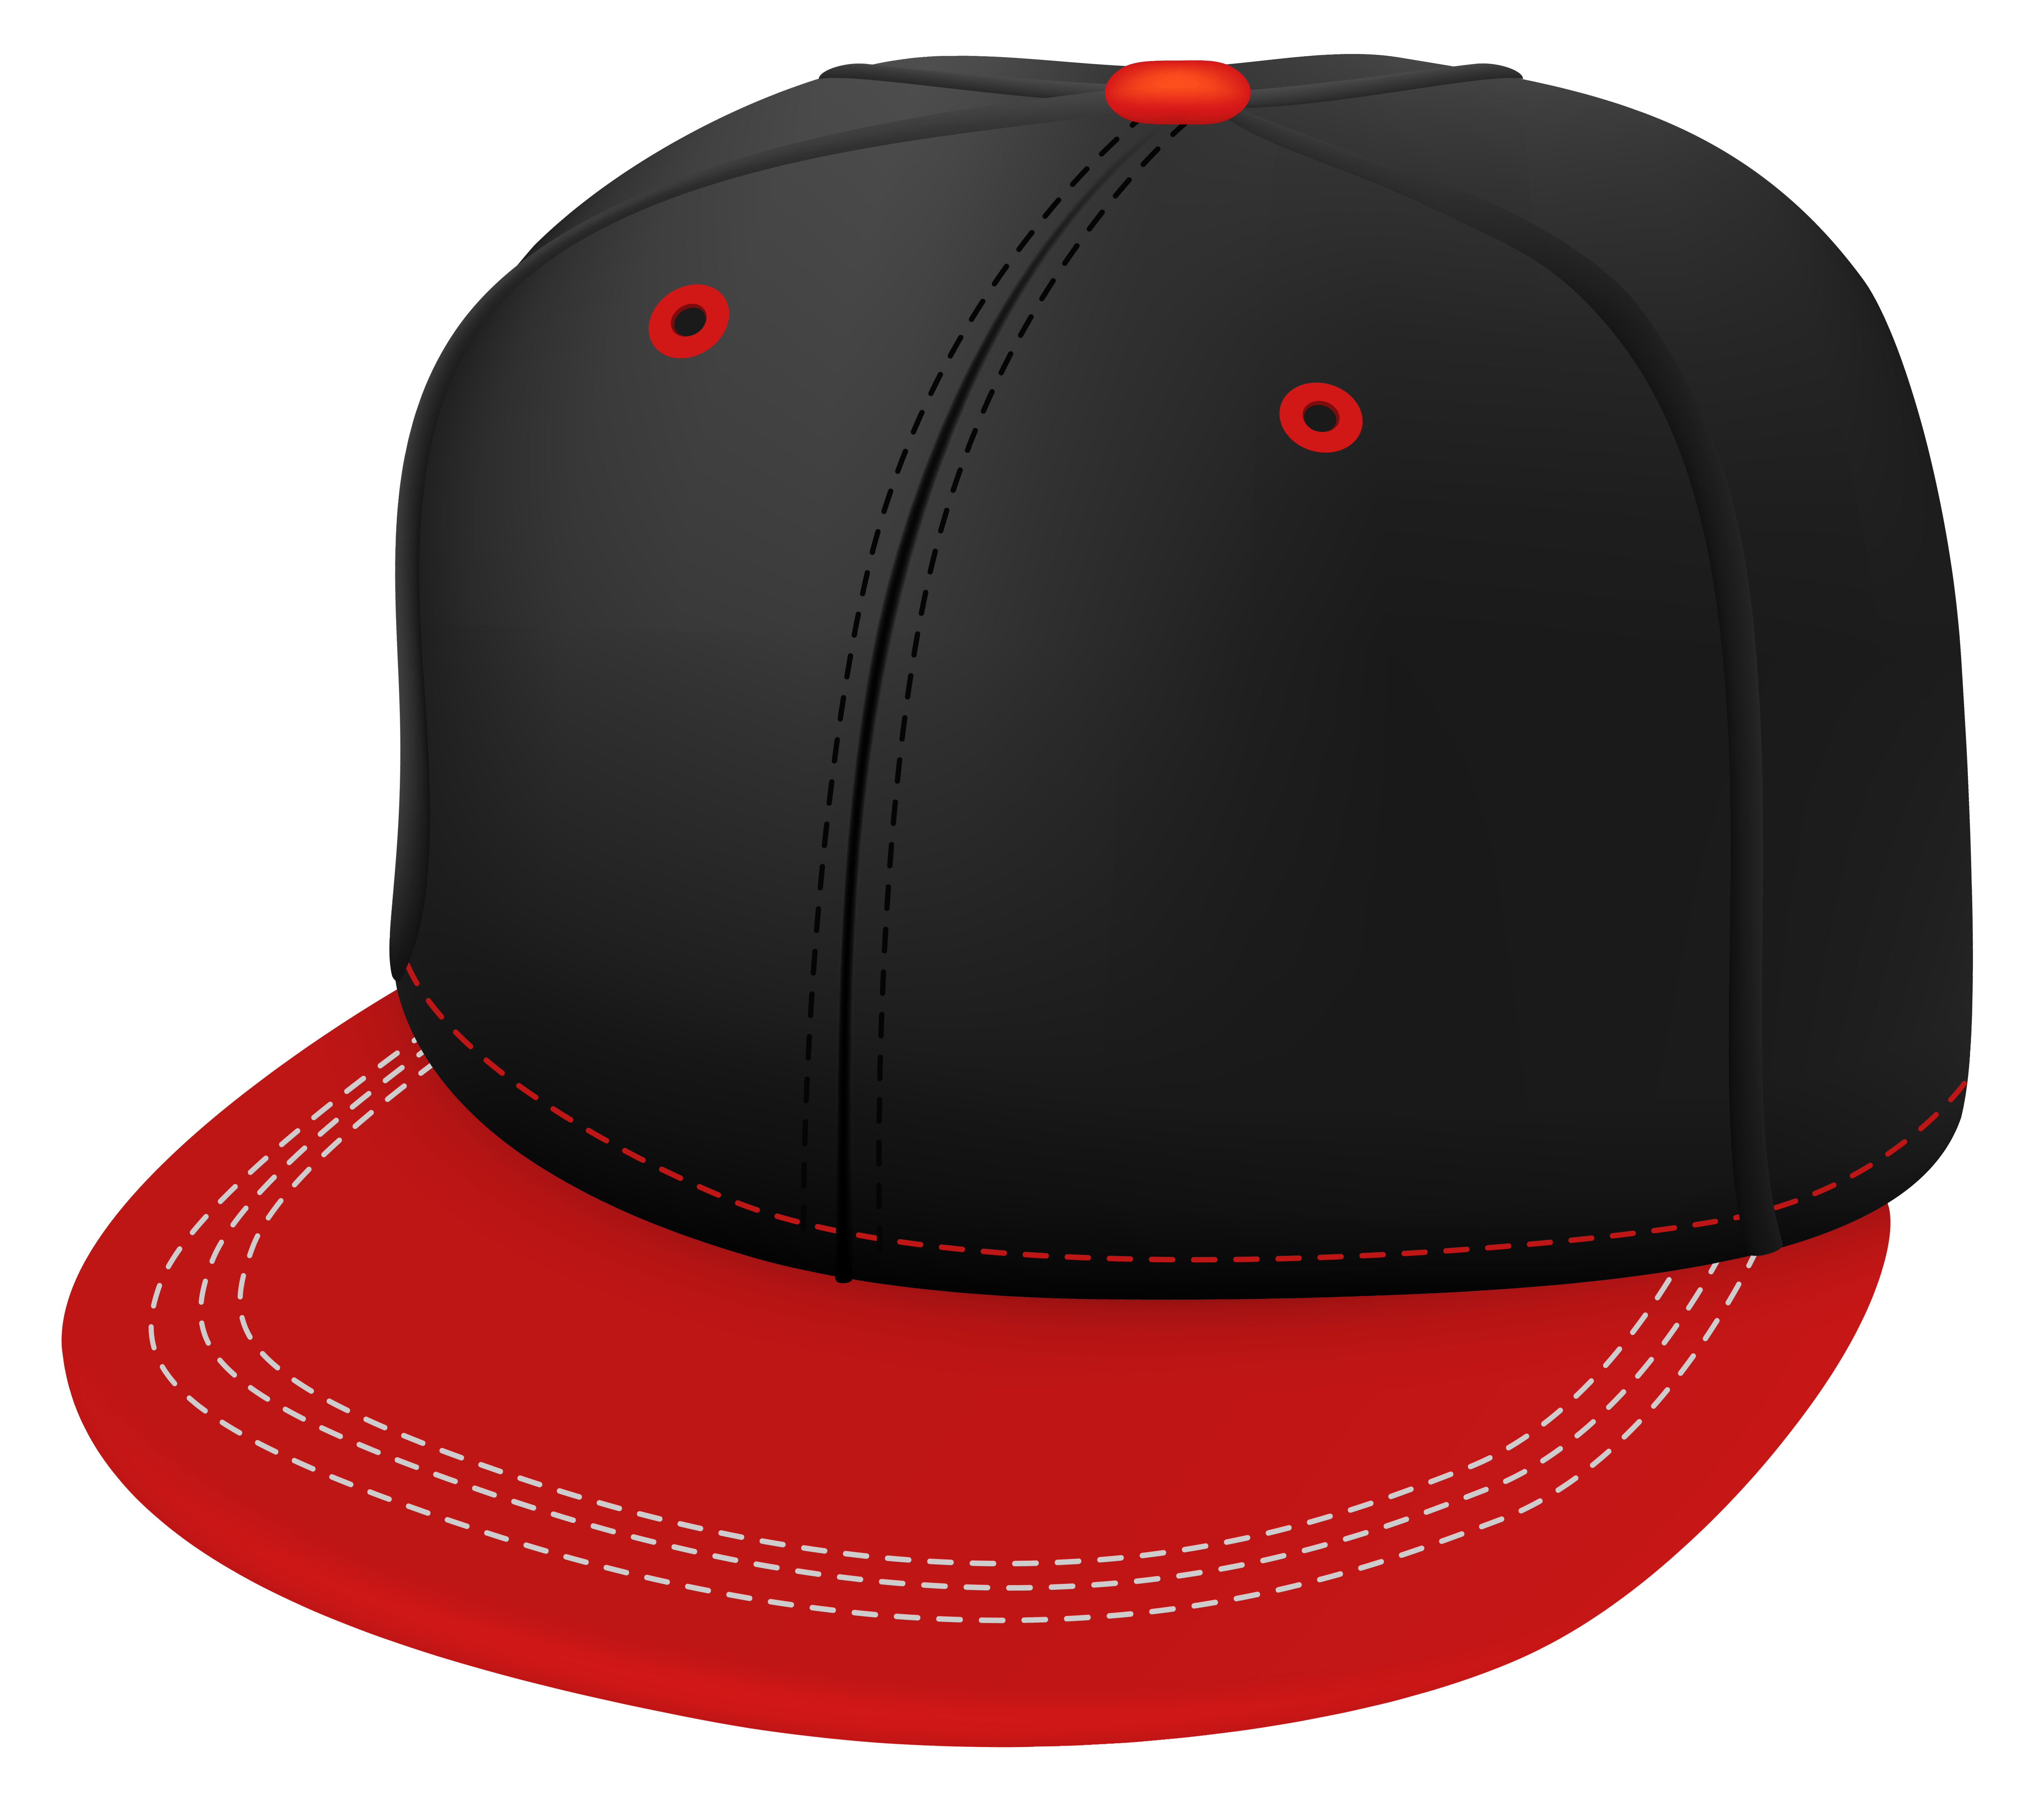 Baseball cap clipart black clipart black and white stock Red and Black Cap PNG Clipart - Best WEB Clipart clipart black and white stock